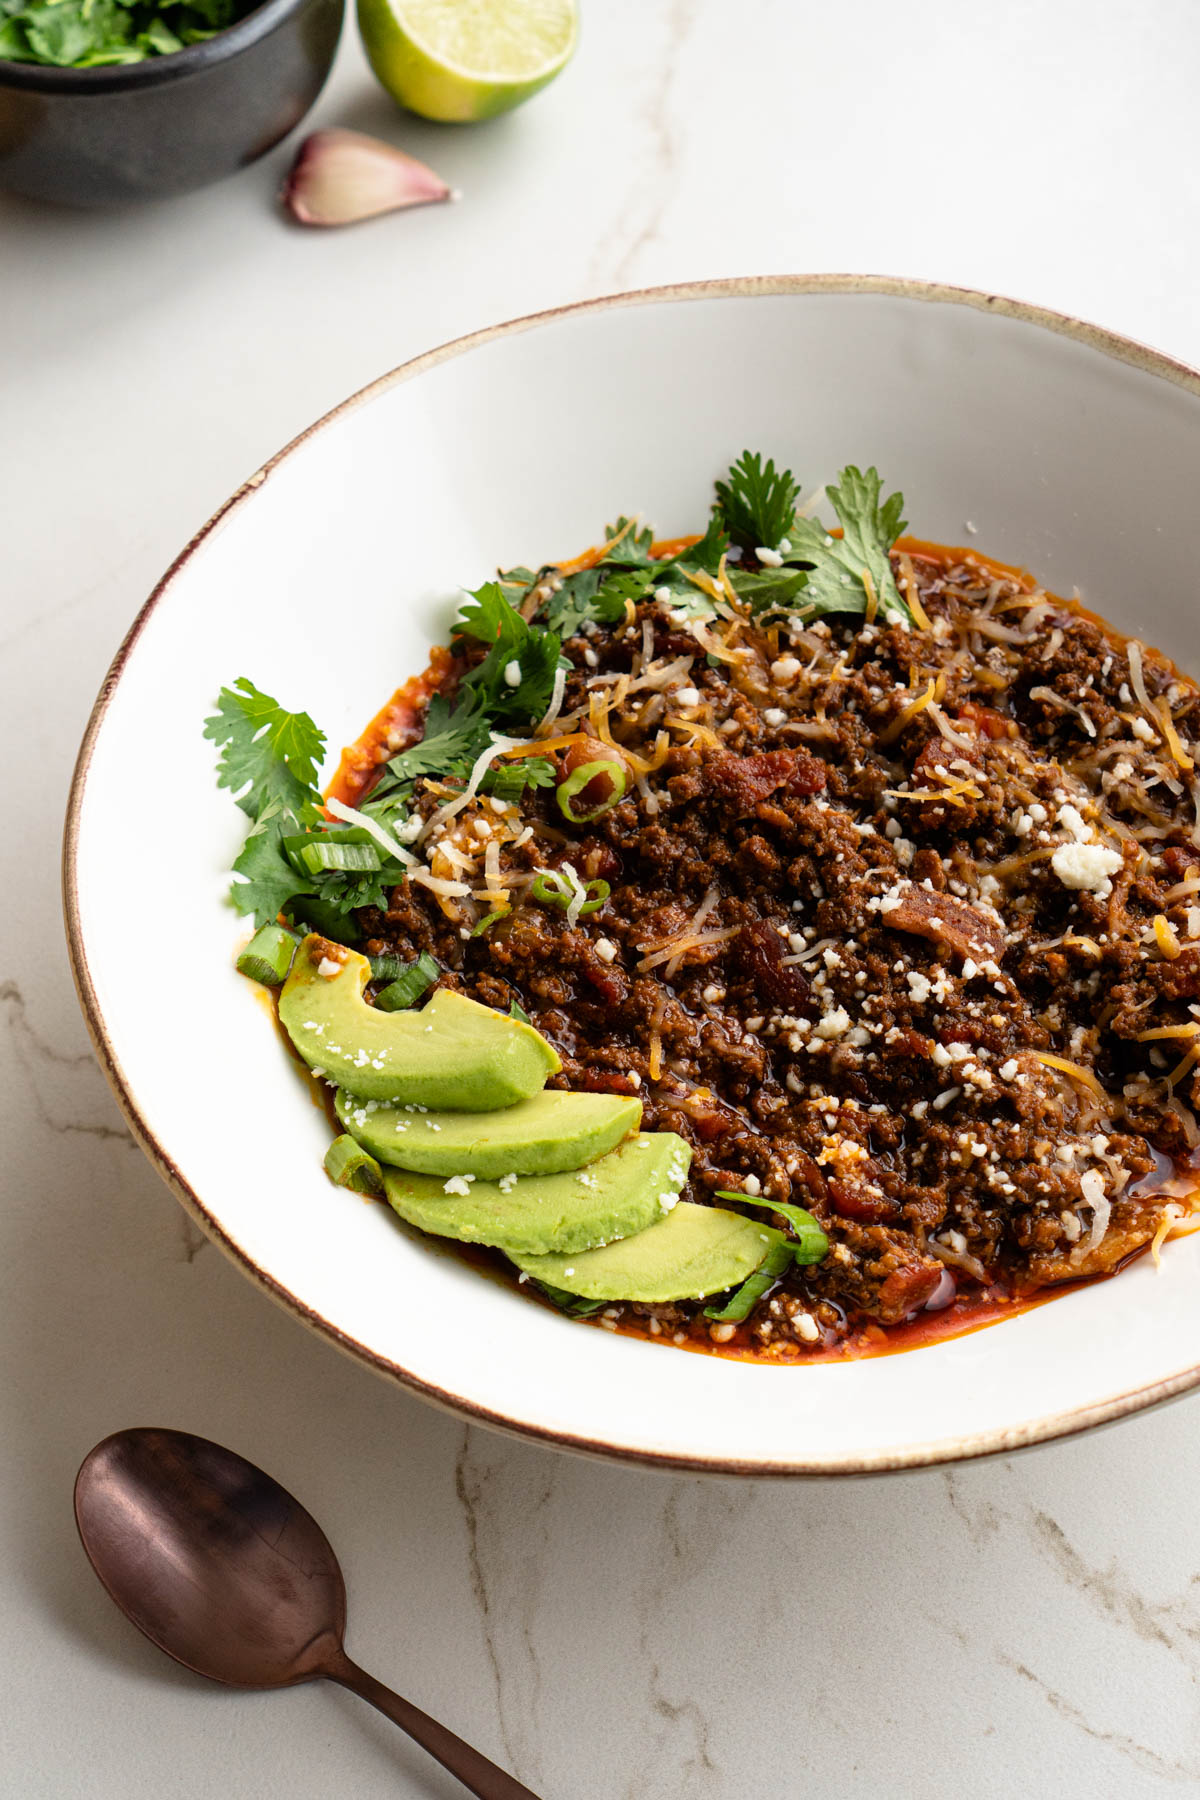 Keto chili con carne with avocado slices, cilantro, green onion, and cheese toppings.